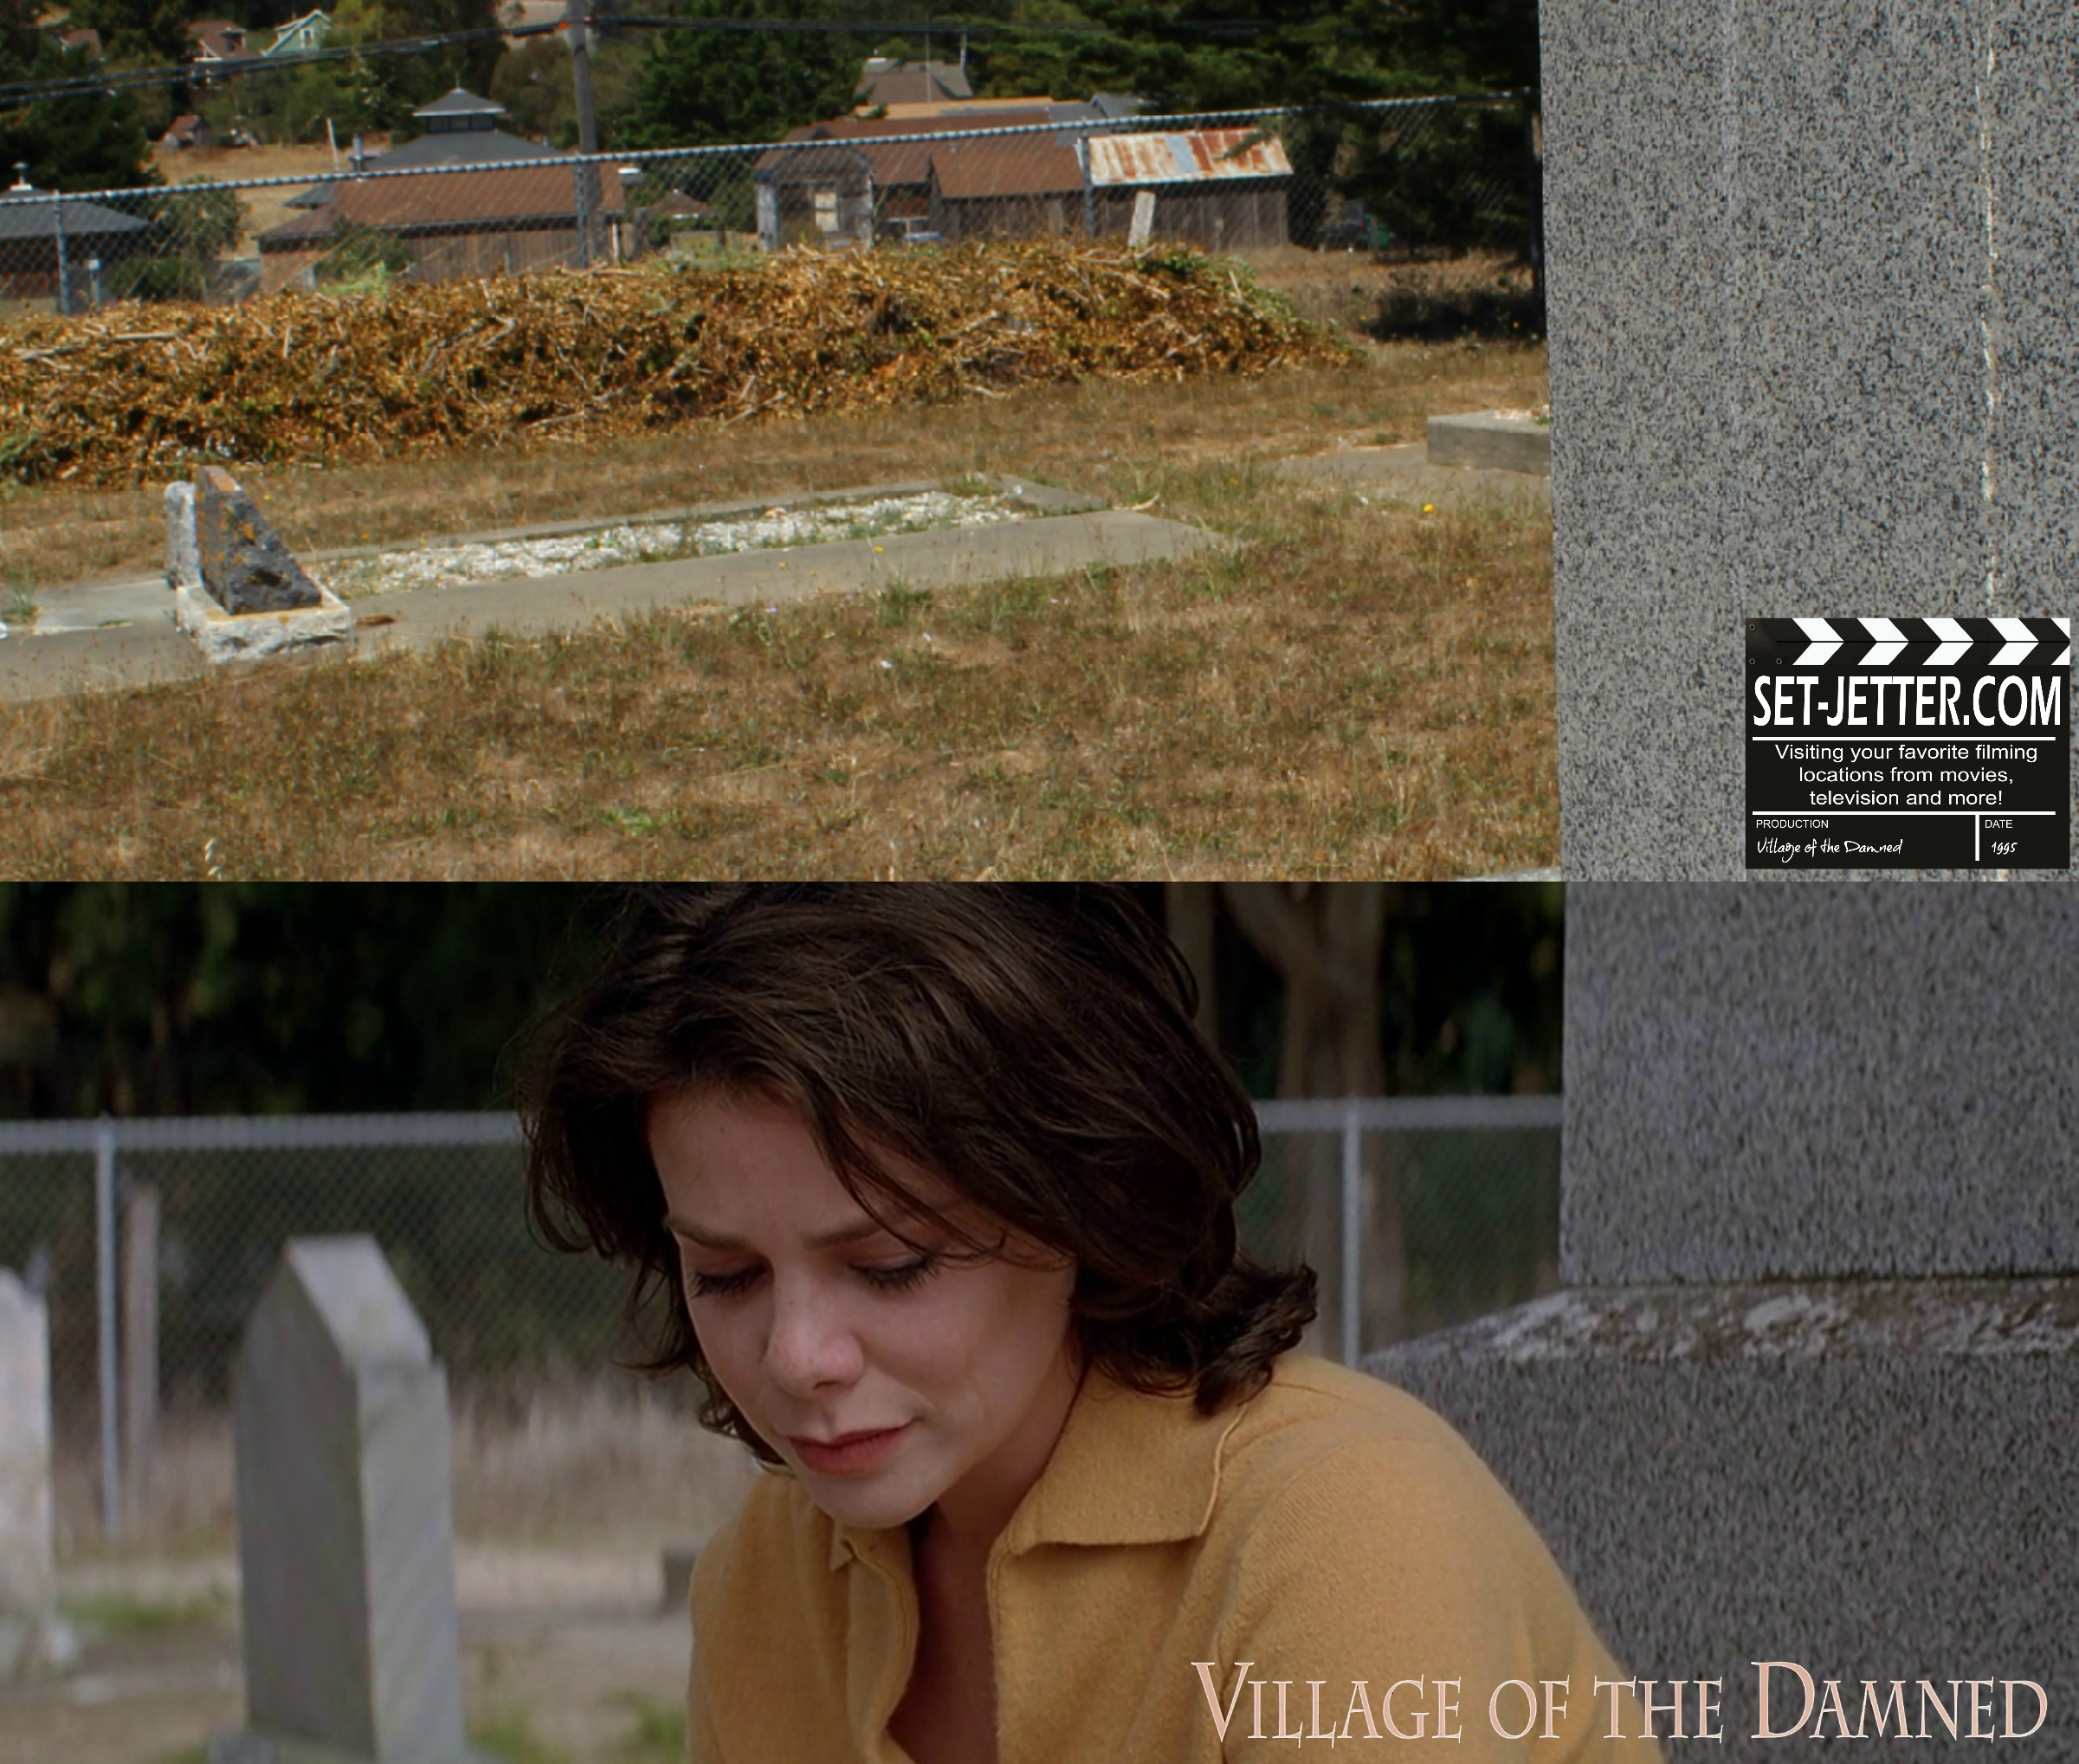 Village of the Damned comparison 92.jpg